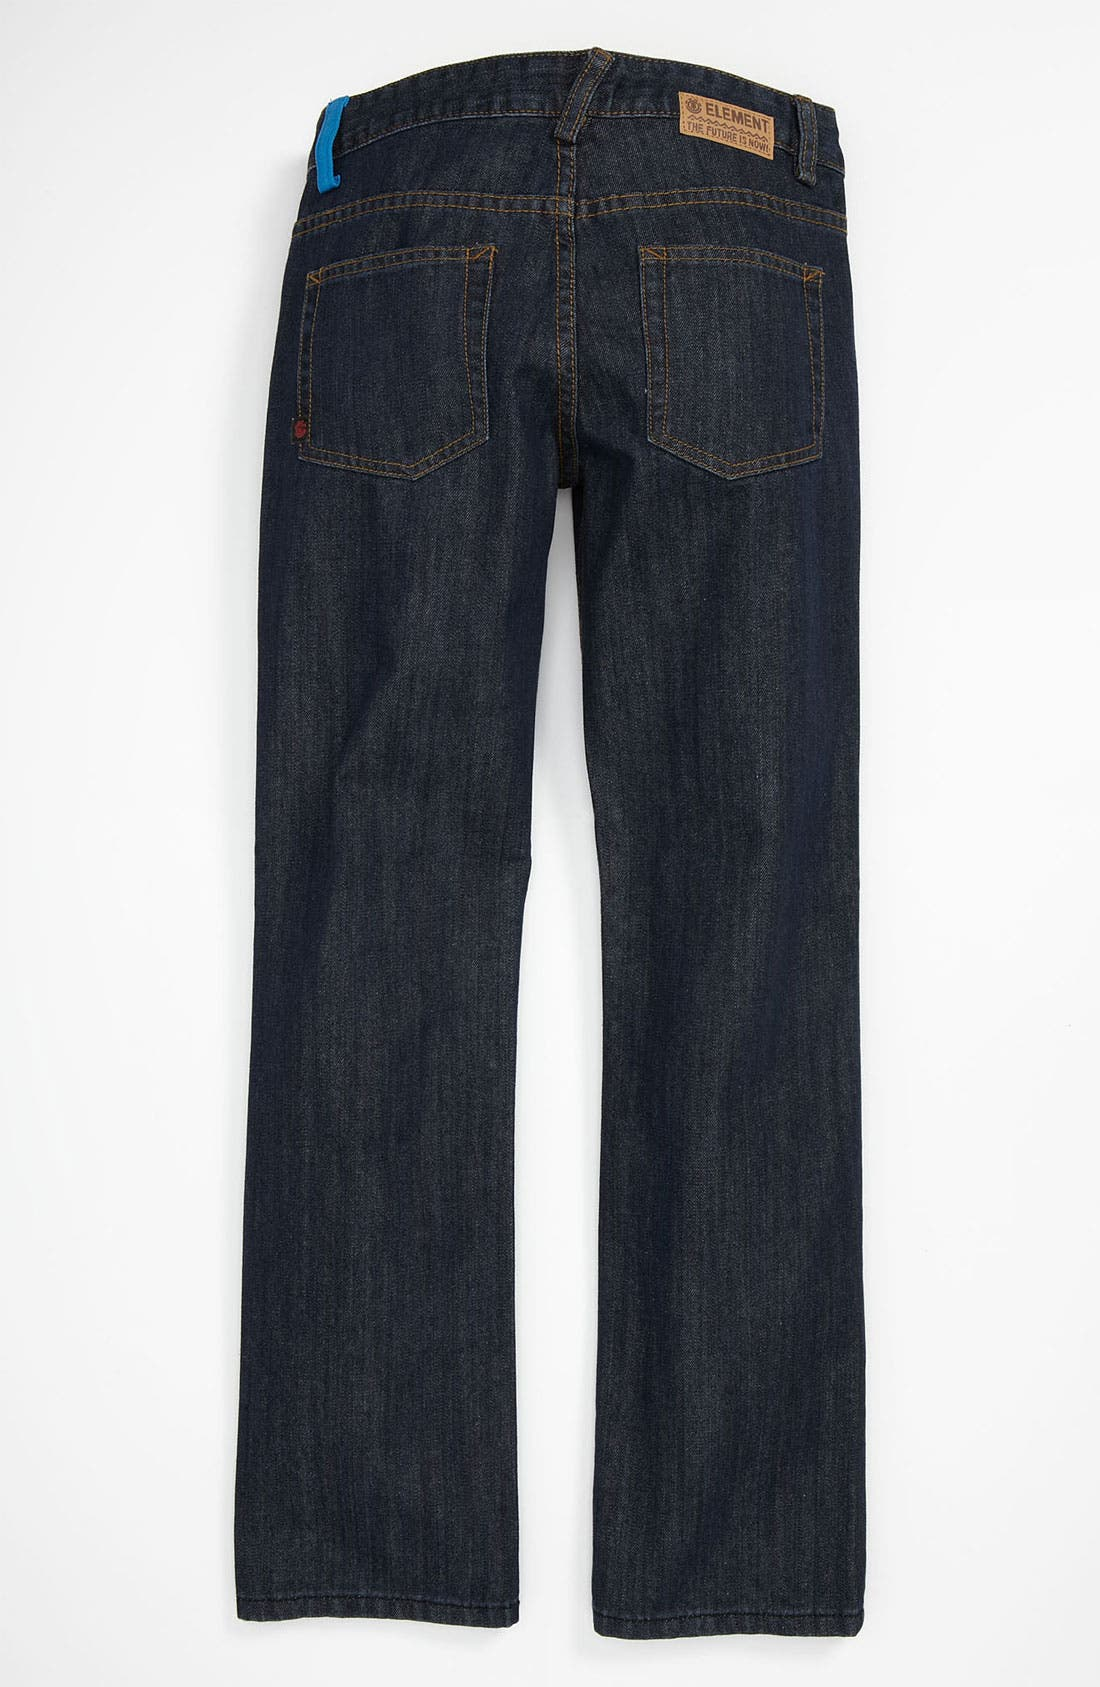 Alternate Image 1 Selected - Element 'Wyatt' Straight Leg Jeans (Big Boys)